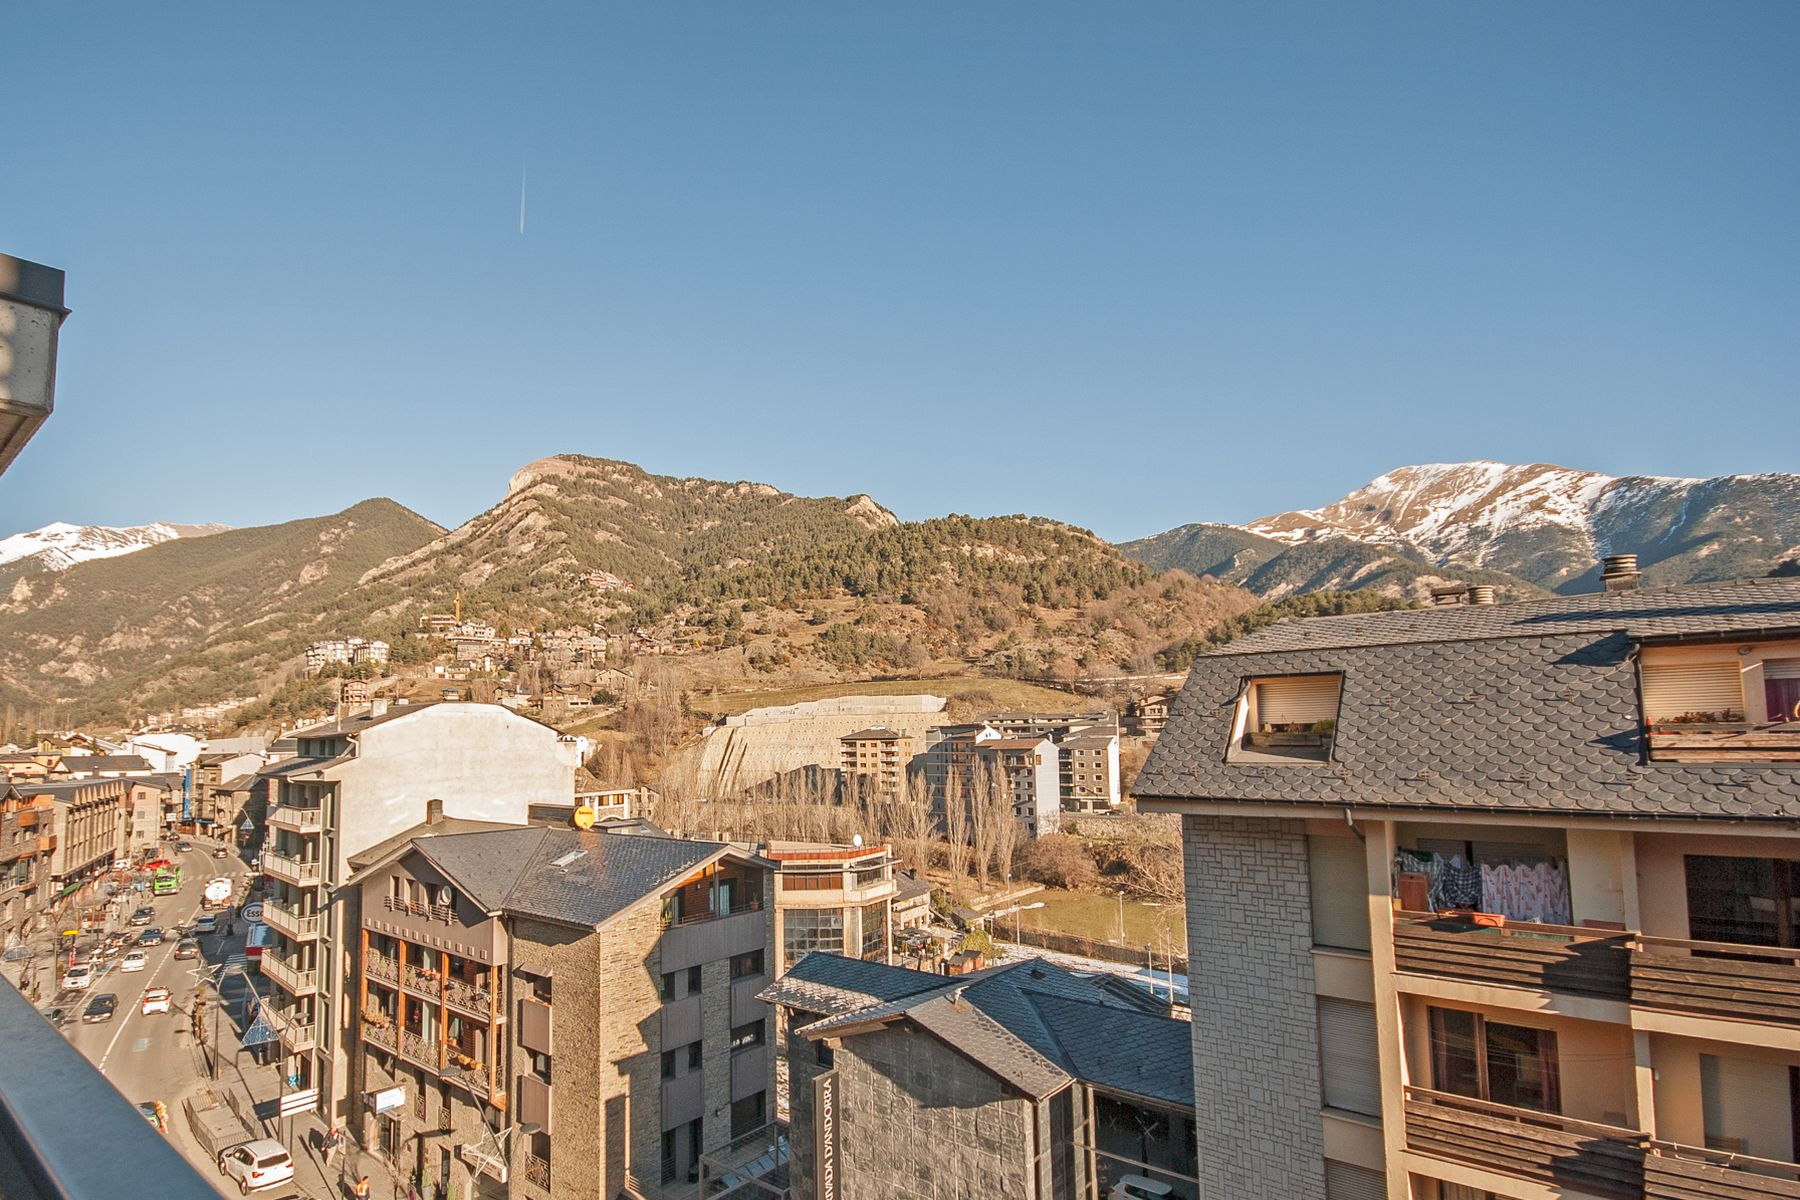 Apartment for Sale at Flat for sale in La Massana La Massana, La Massana, AD400 Andorra